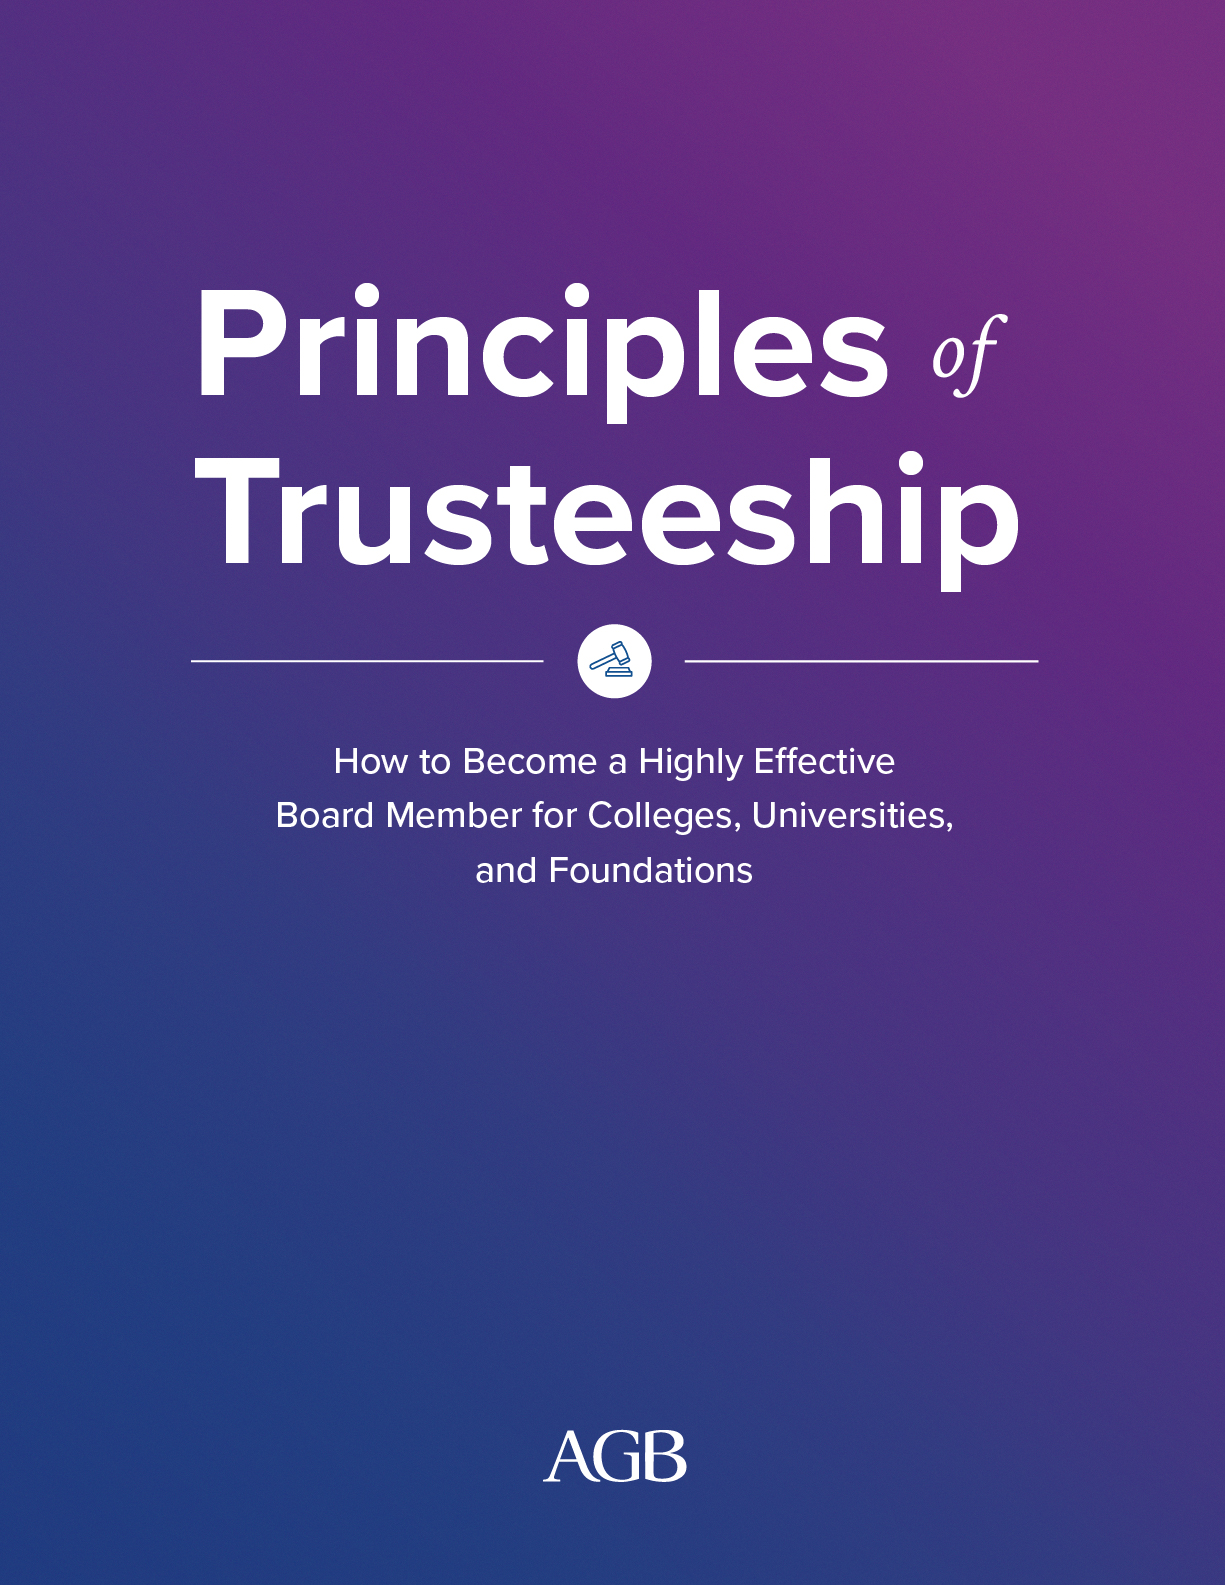 Principles of Trusteeship Guide Cover